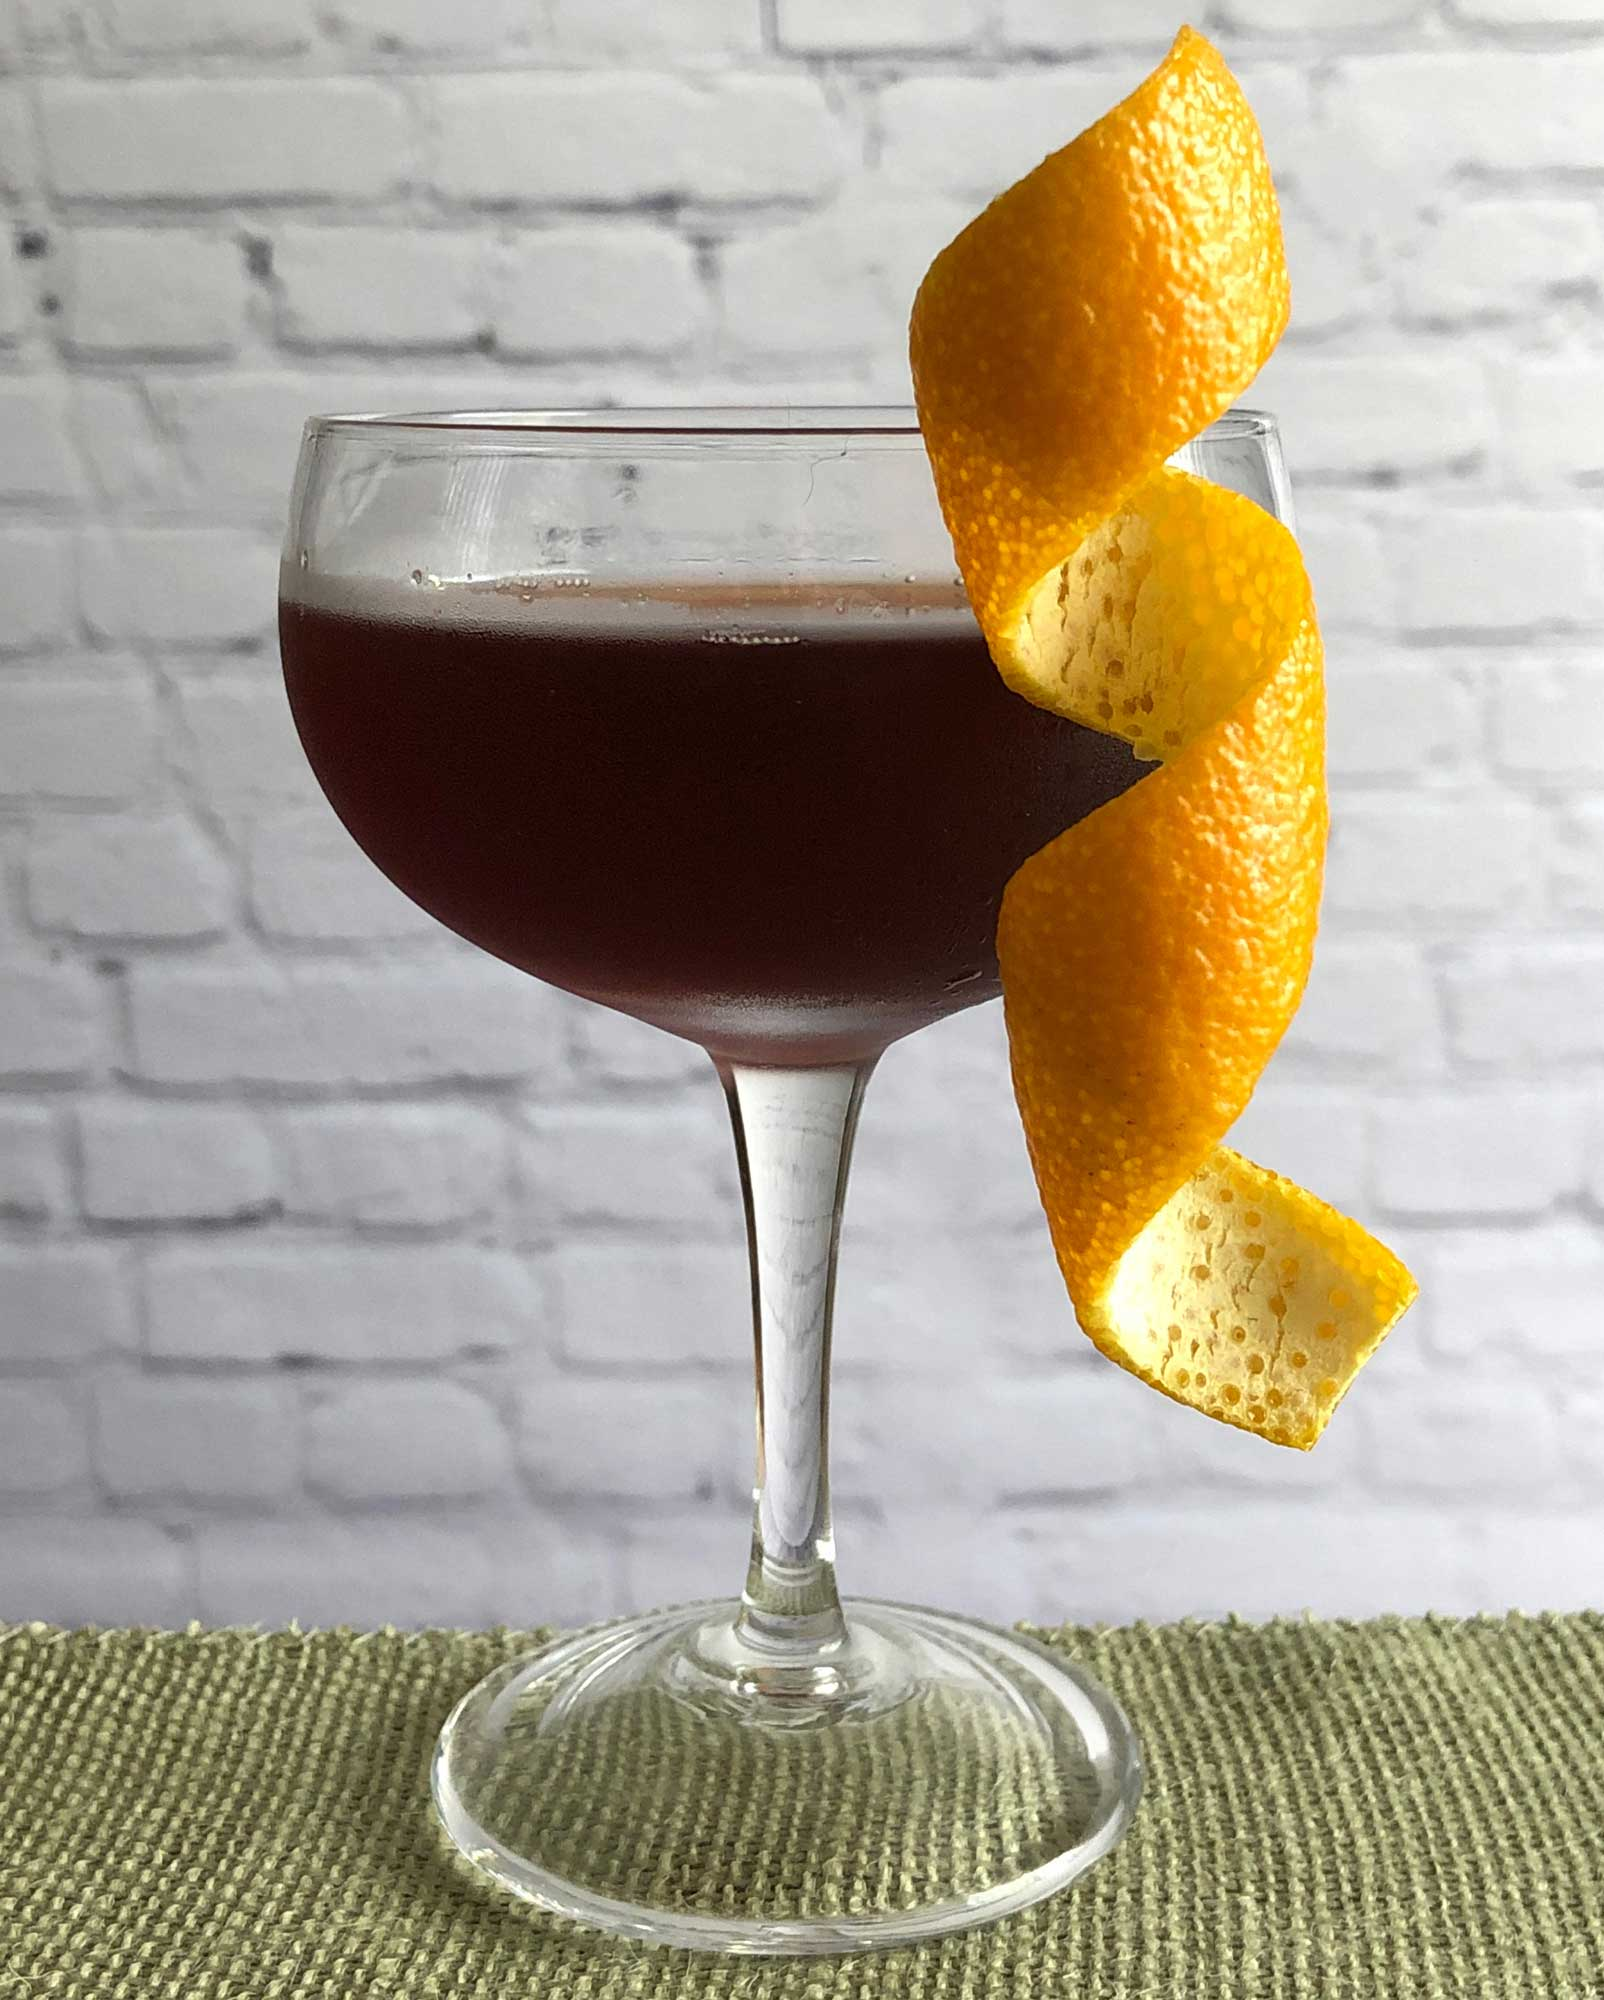 An example of the Cliffhanger, the mixed drink (cocktail) featuring Dolin Dry Vermouth de Chambéry, and Banyuls; photo by Lee Edwards